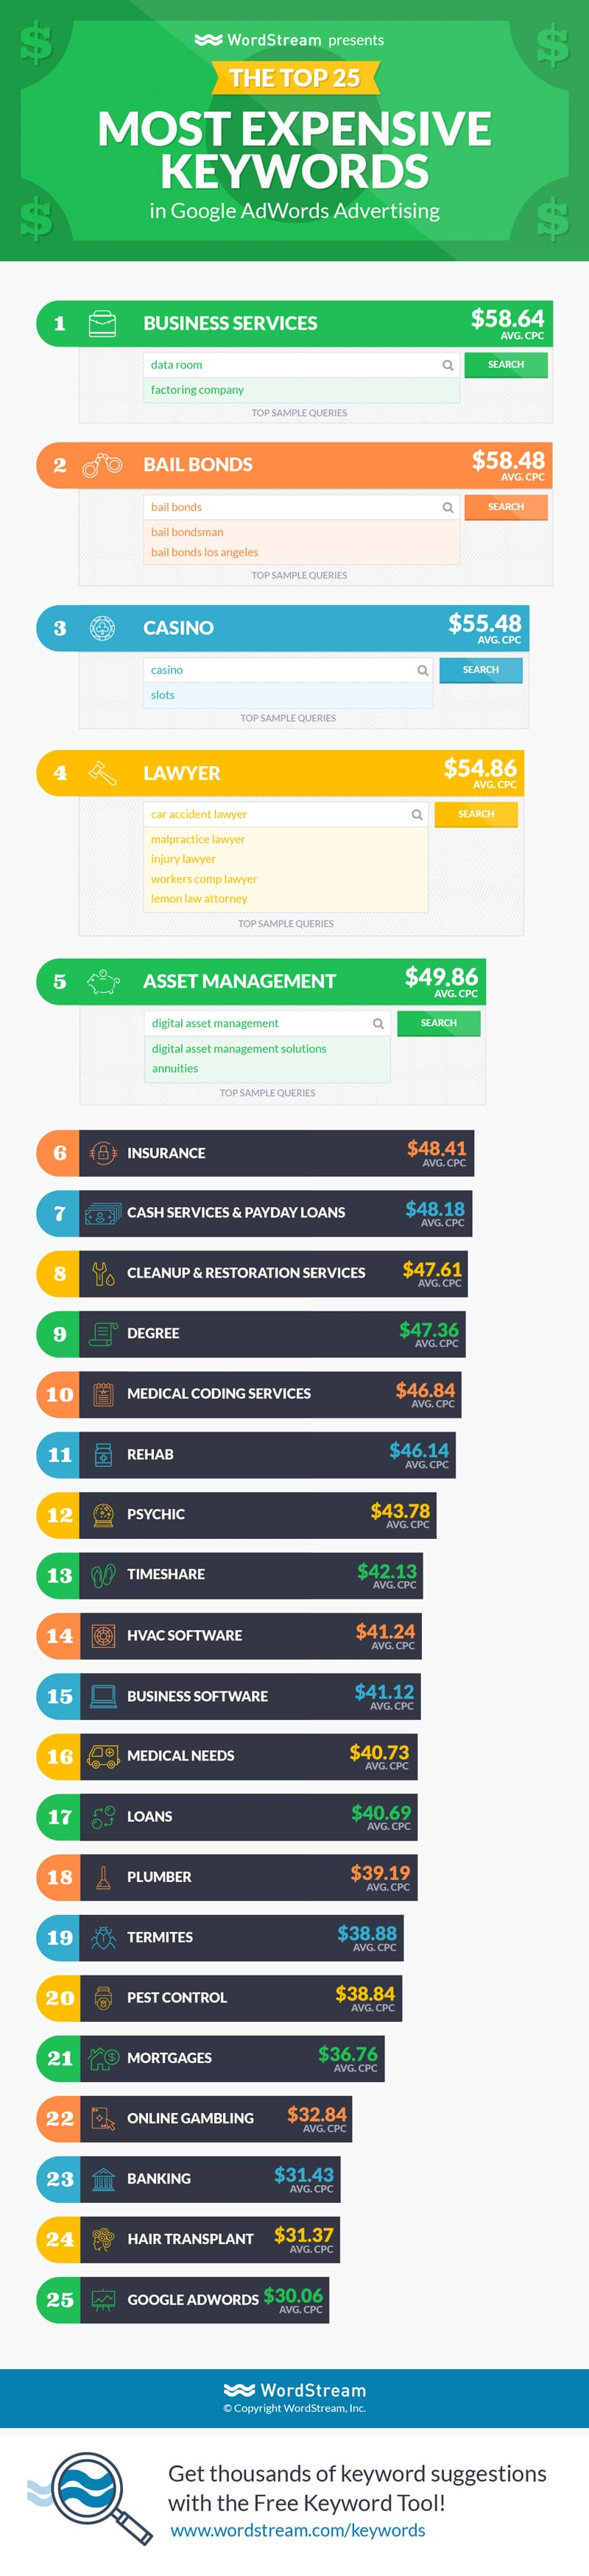 Infographic - Most Expensive Keywords in Google AdWords